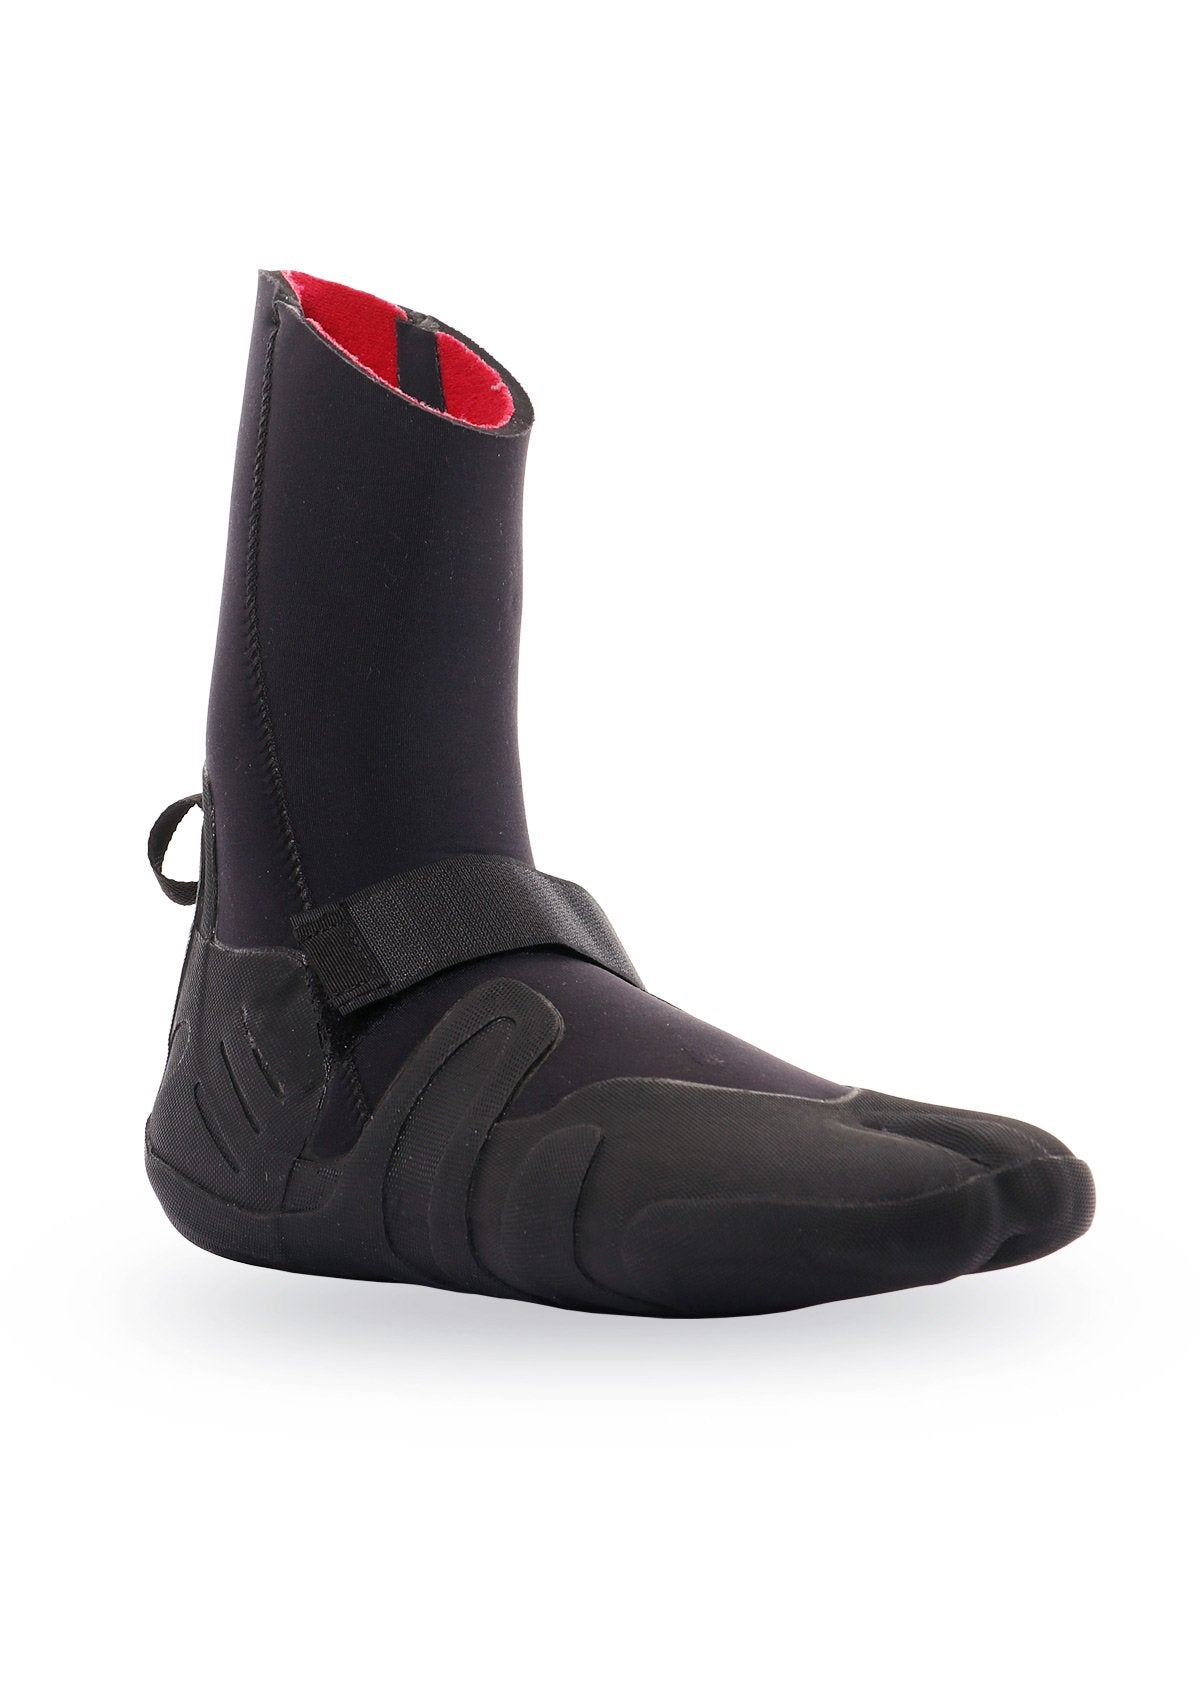 needessentials 6mm thermal booties winter surfing black non branded coldwater